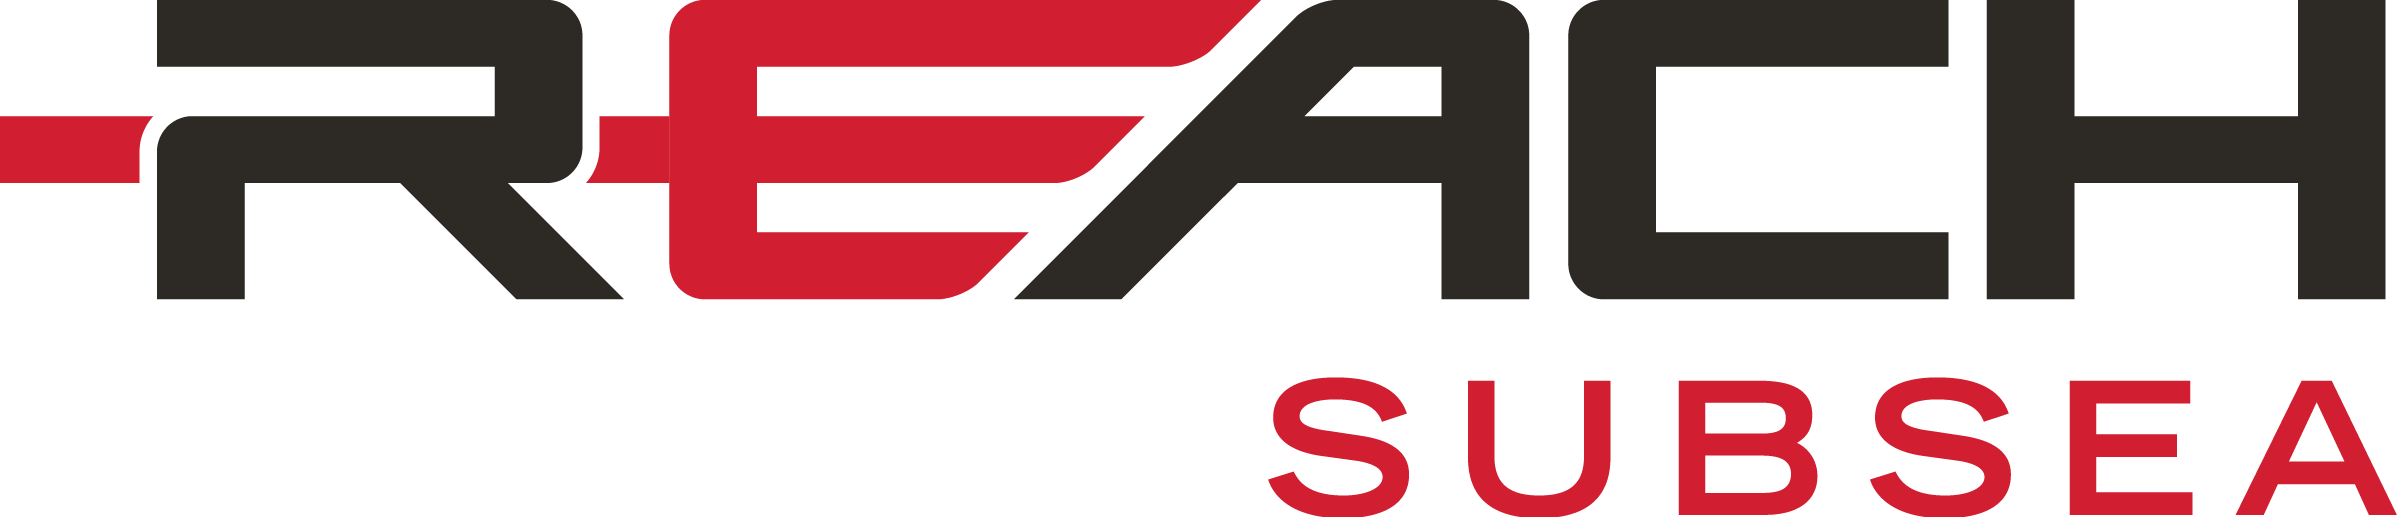 reach-subsea-logo.png